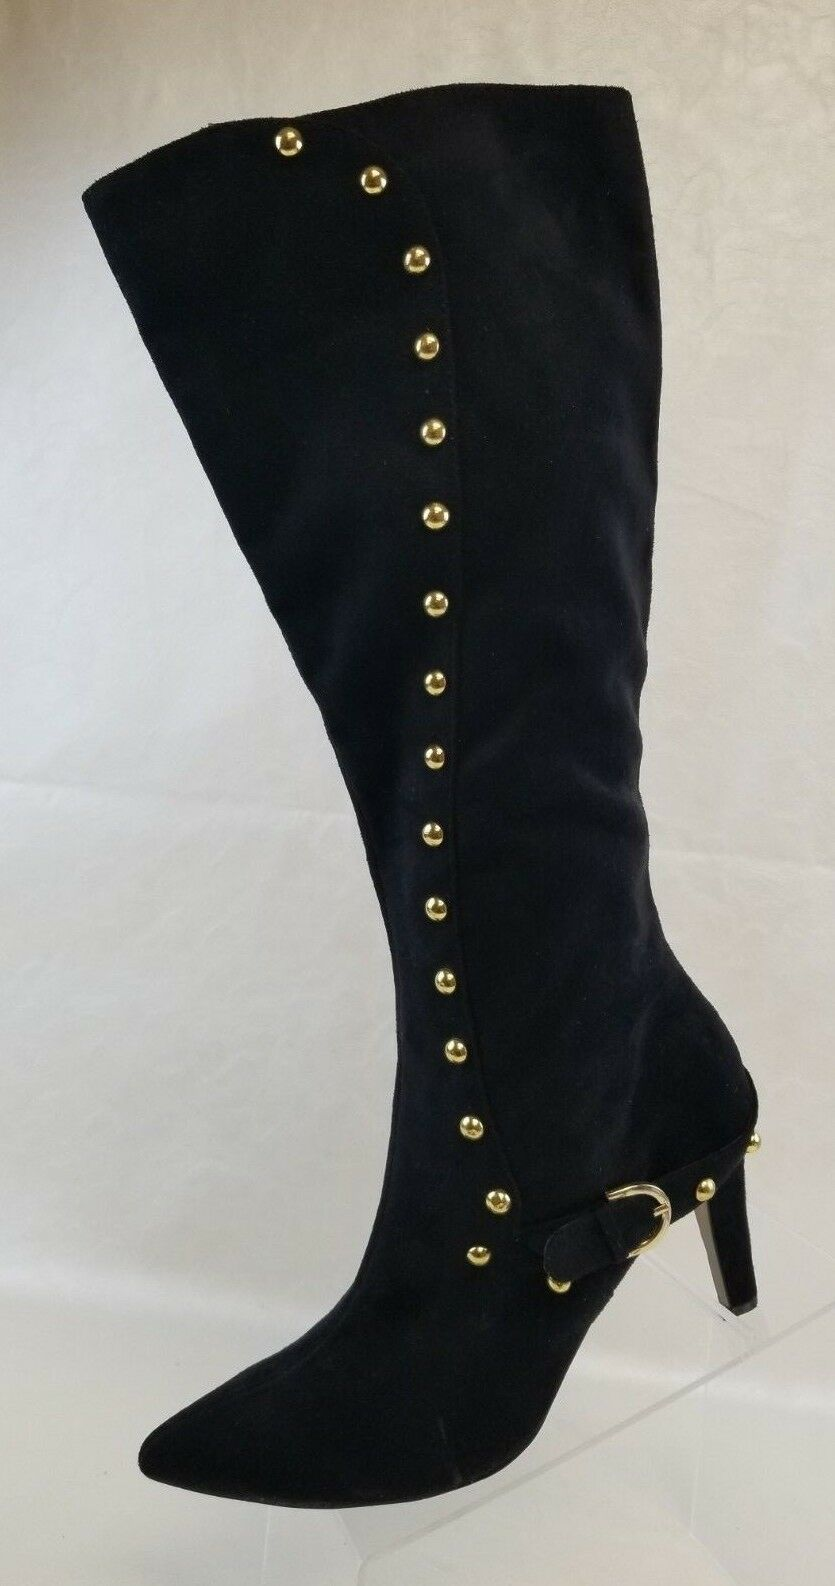 Ann Marino Knee High Boots Womens Zip Heels gold Stud Black Faux Suede Size 9.5M